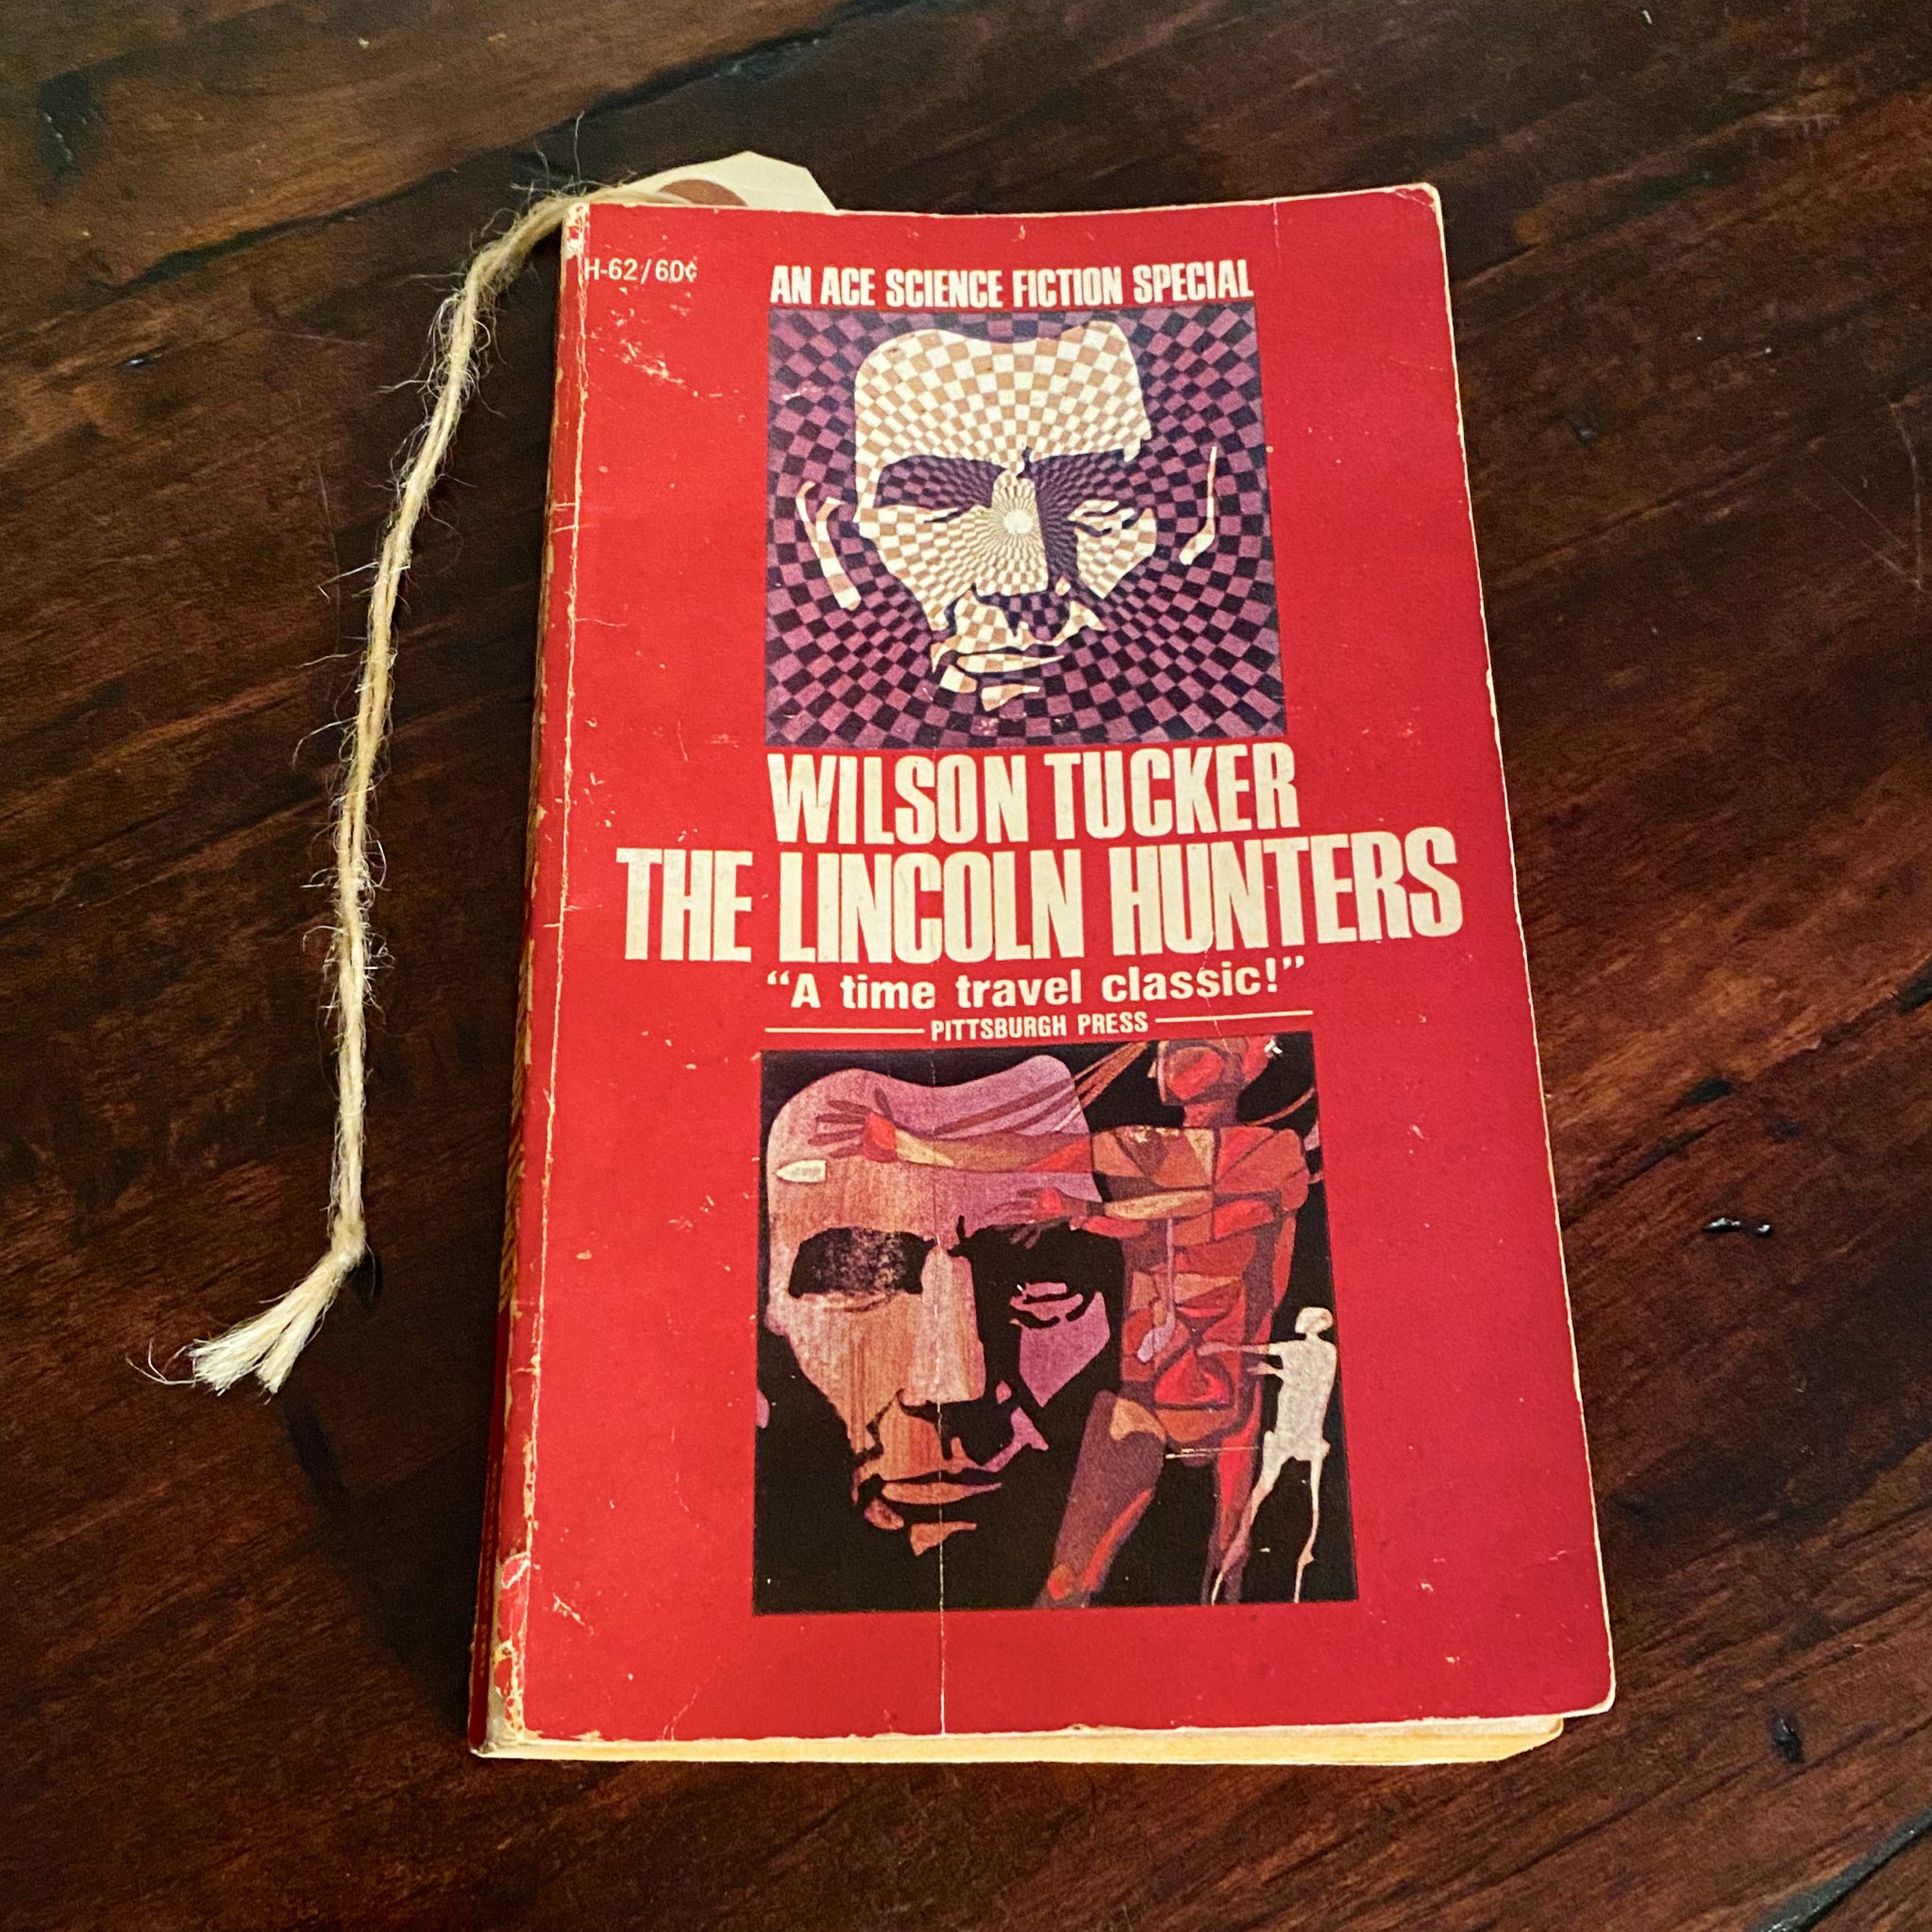 The Lincoln Hunters book cover